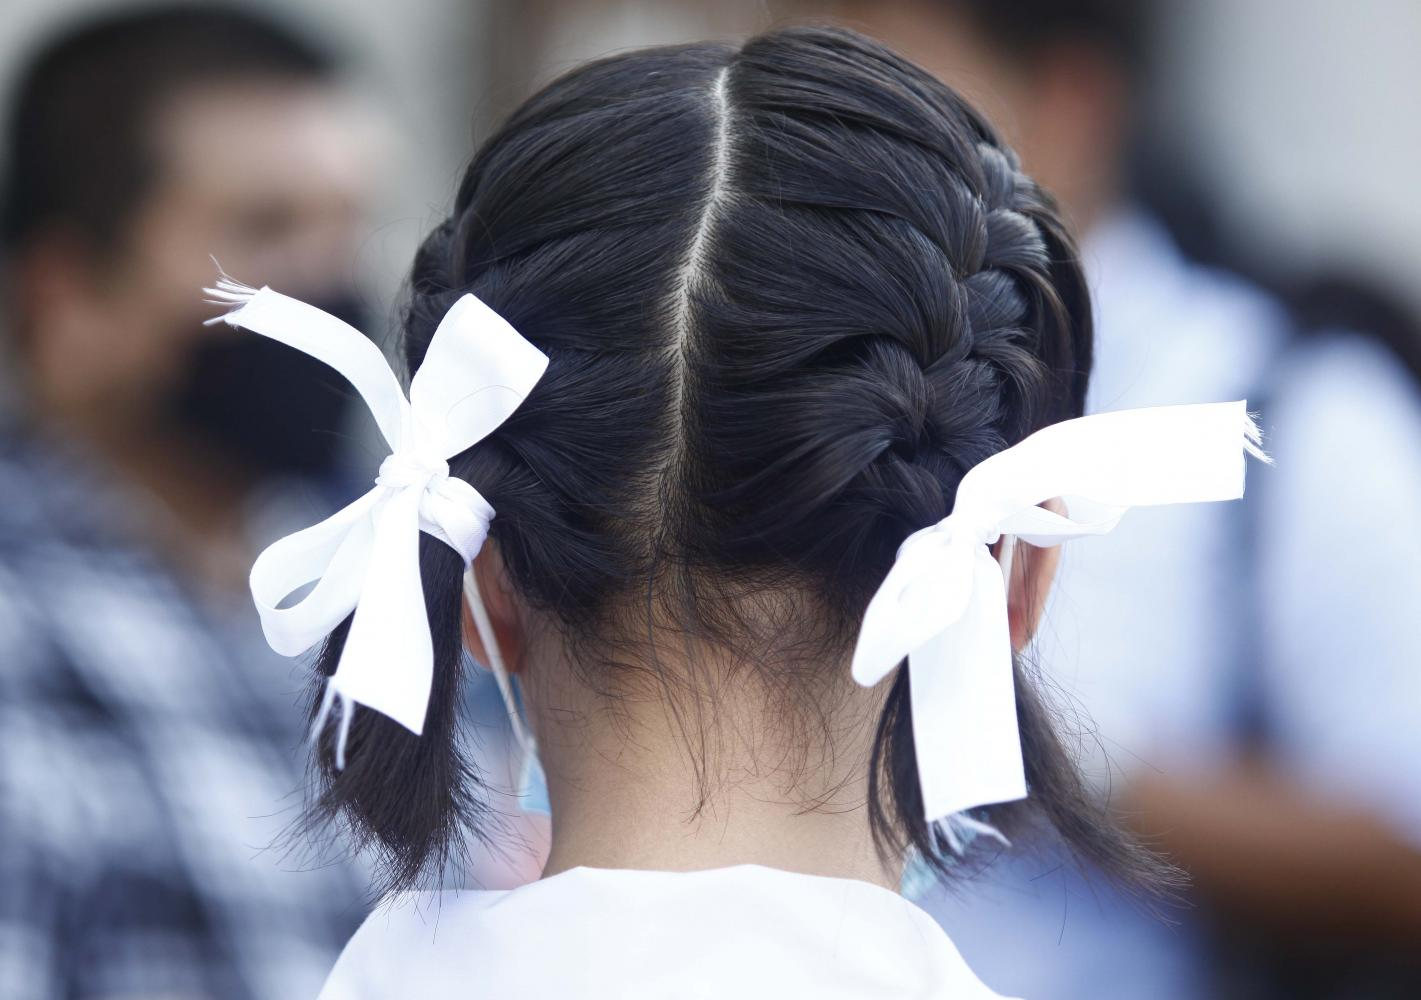 White ribbons are worn by students as a symbol that they stand in unity amid anti-government protests.